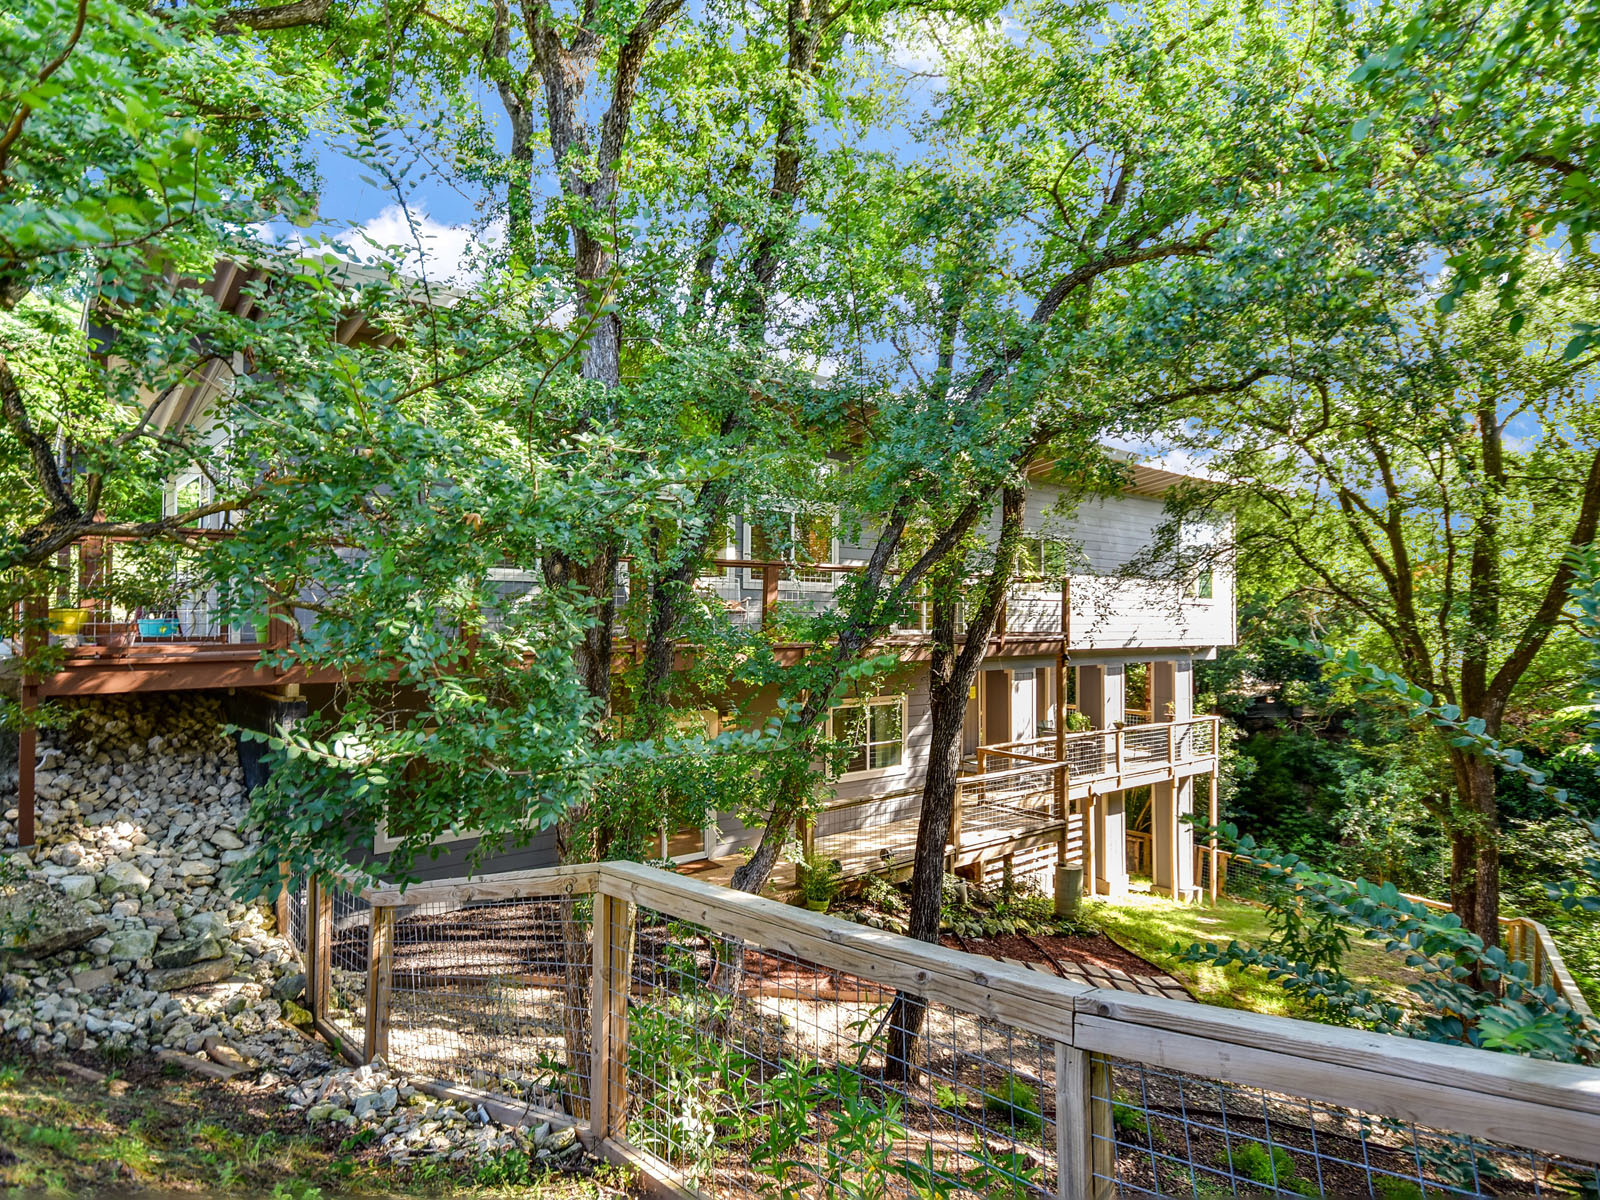 Single Family Home for Sale at Urban East Side Treehouse 5204 Delores Ave Austin, Texas 78721 United States